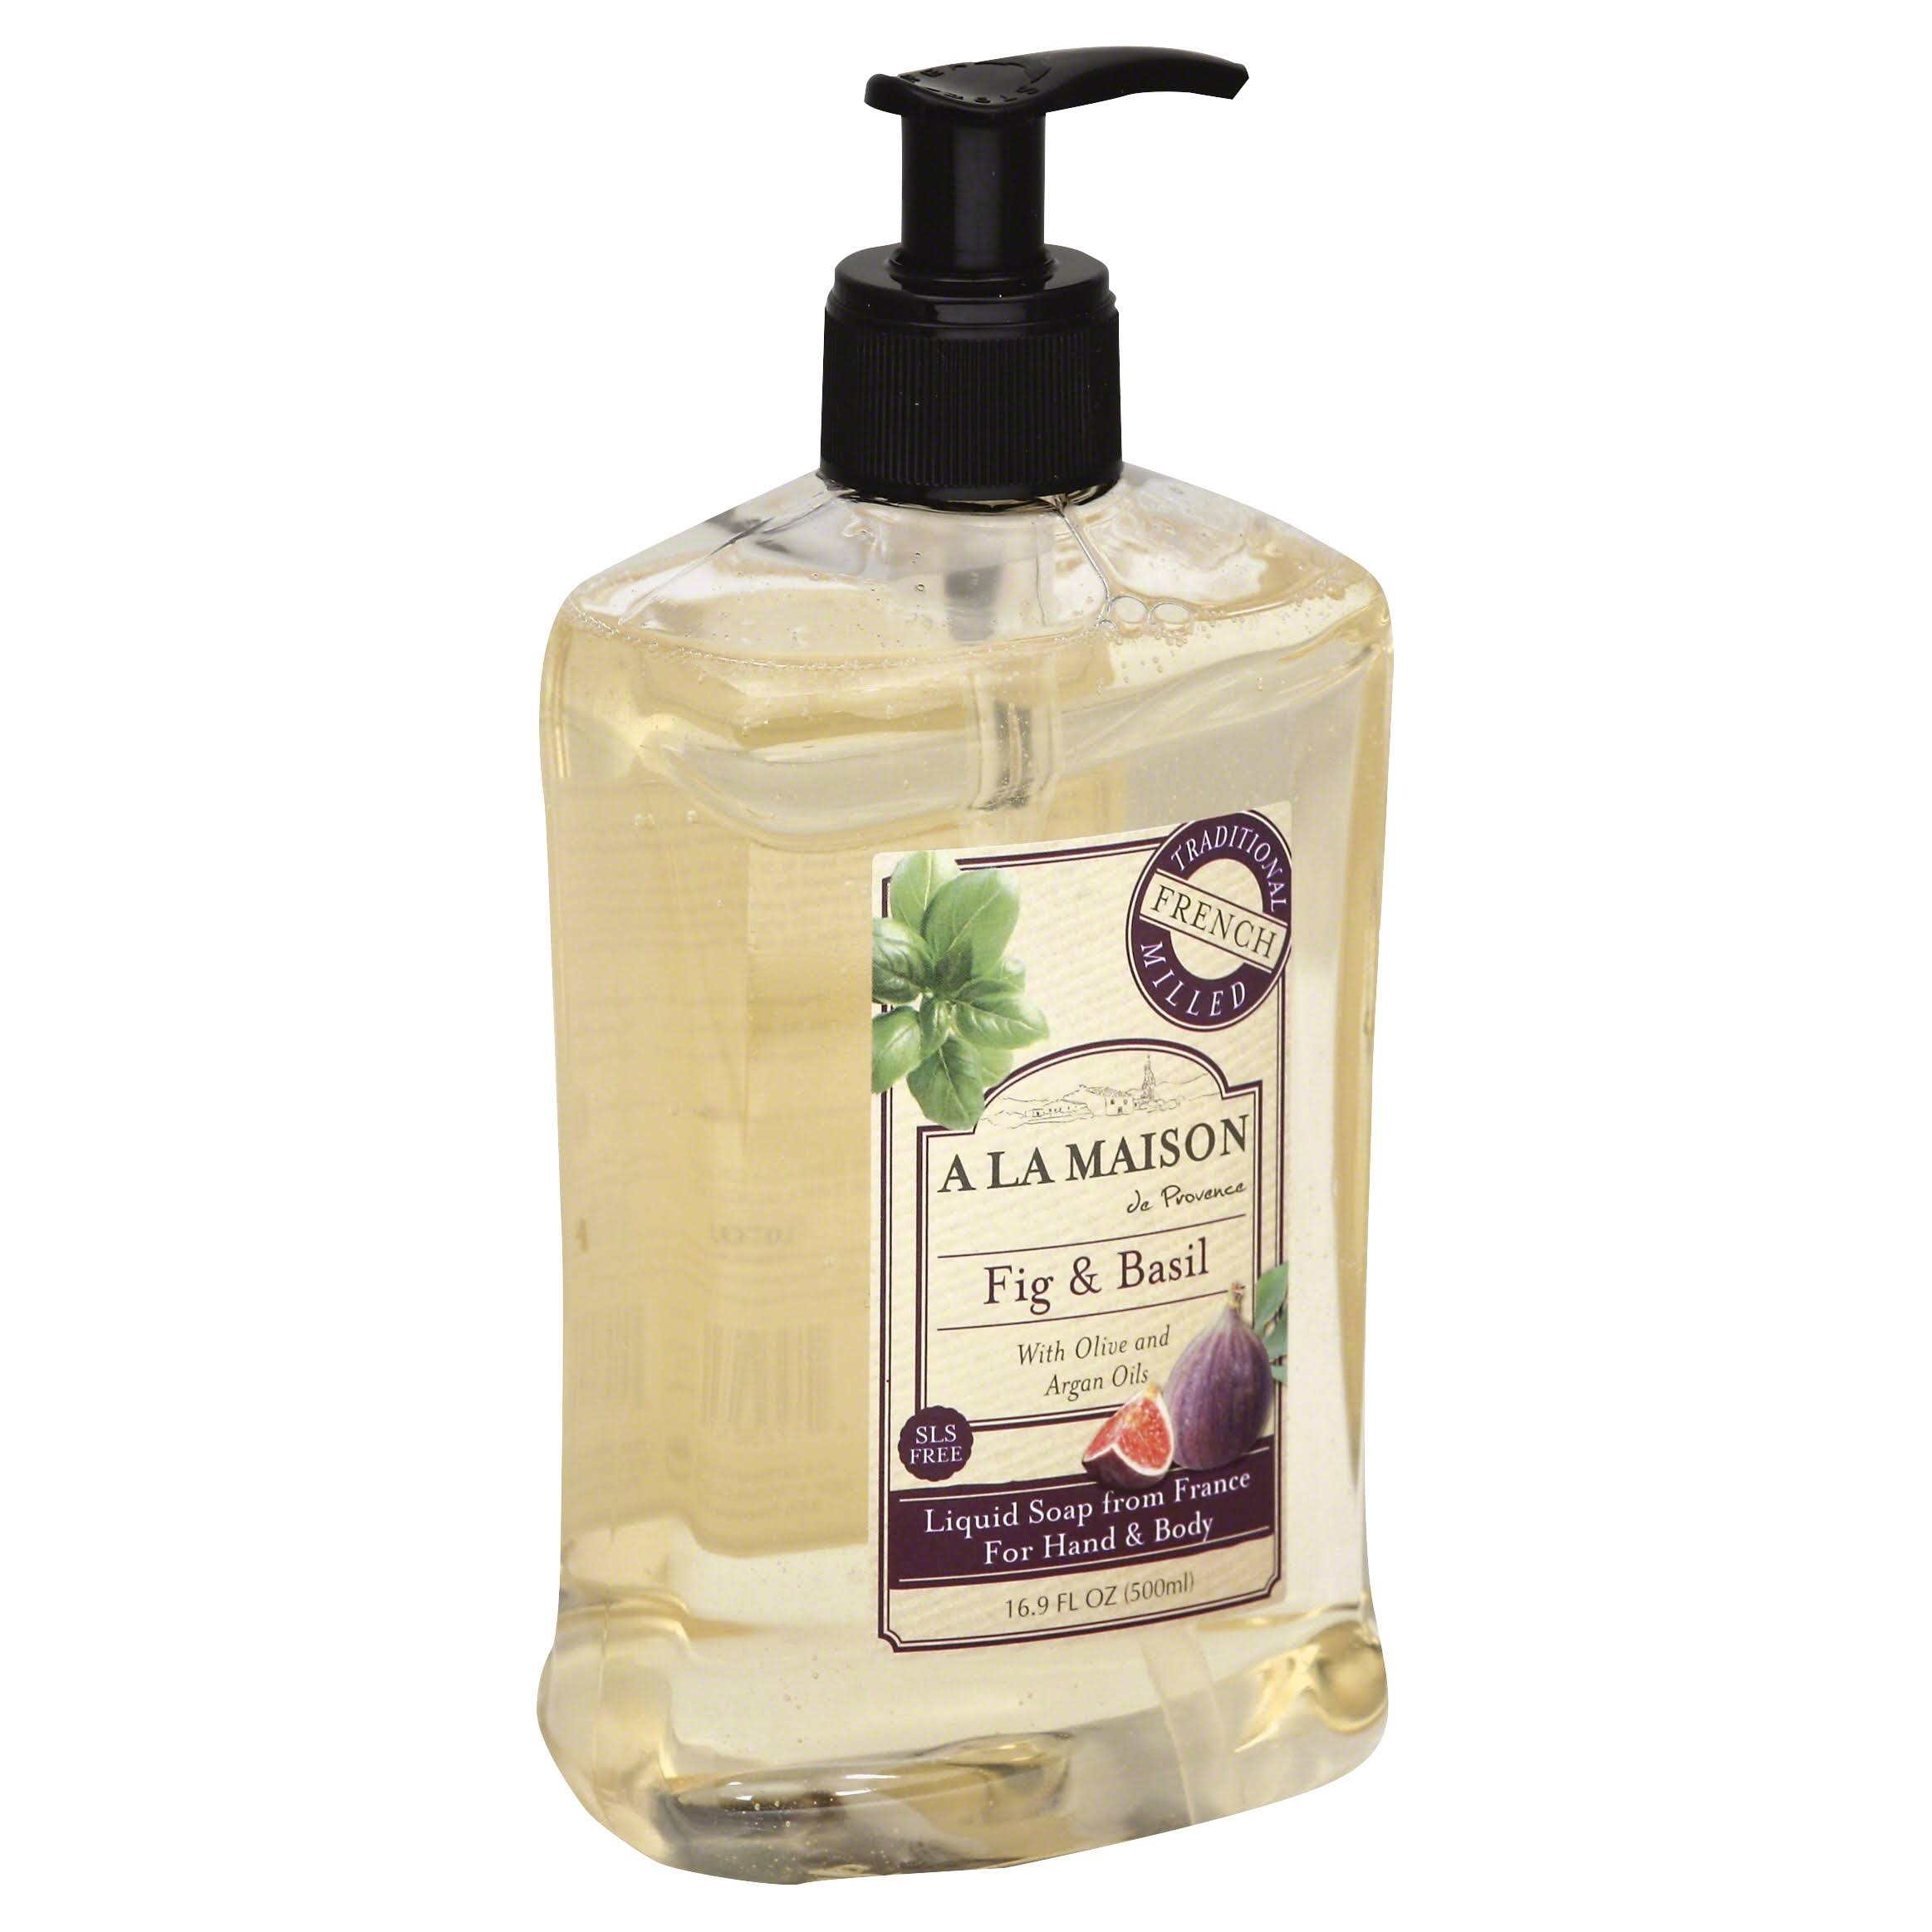 A La Maison French Liquid Soap - Fig and Basil, 16oz